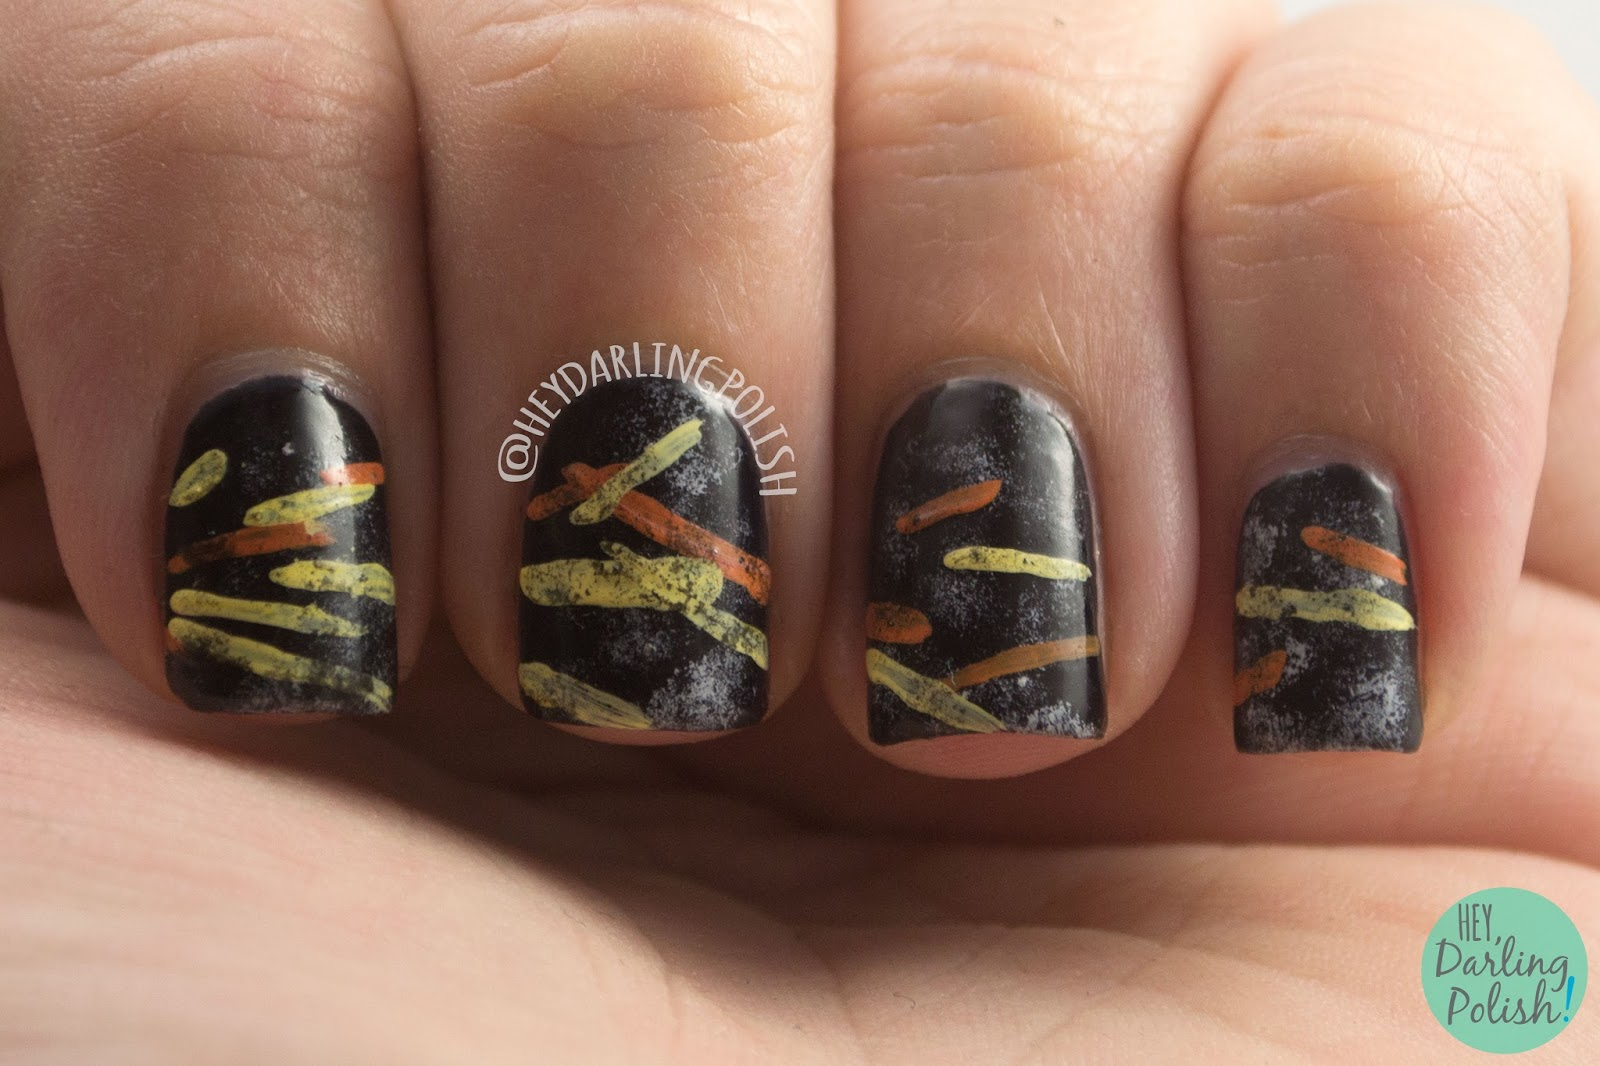 nails, nail art, nail polish, now now every children, lines, black, hey darling polish, finger food theme buffet, music